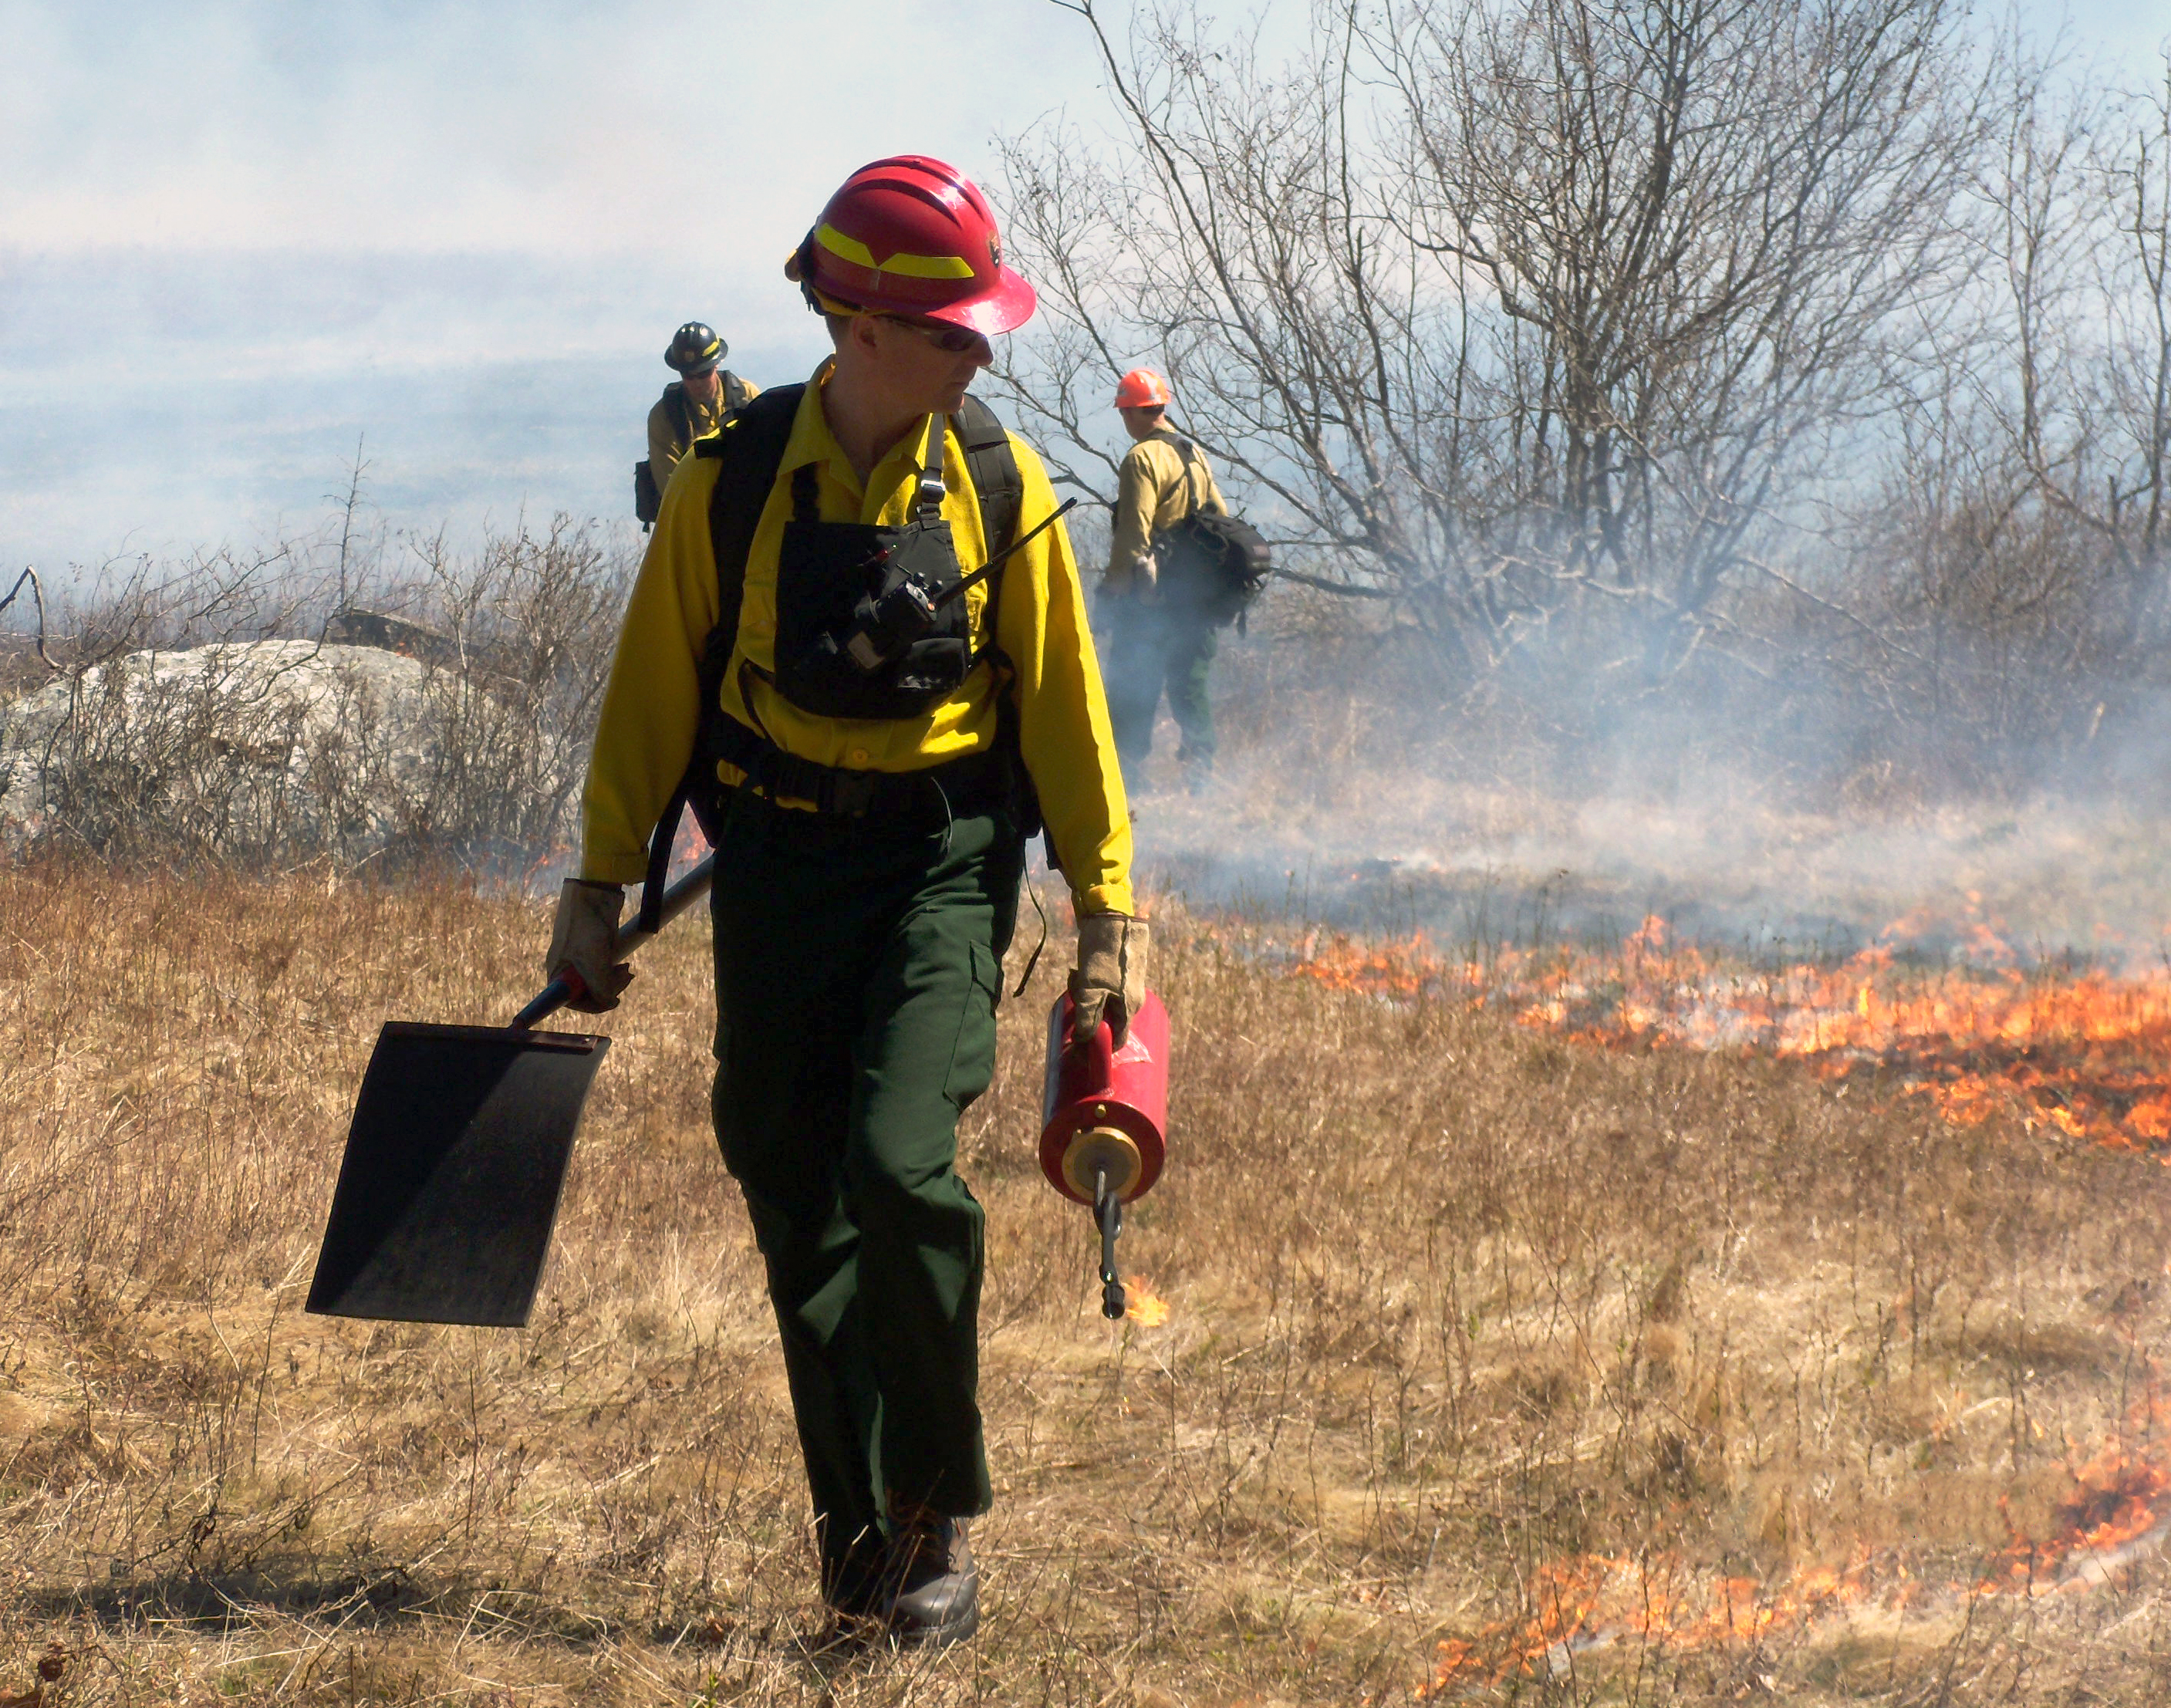 Willdland firefighter carries a drip torch